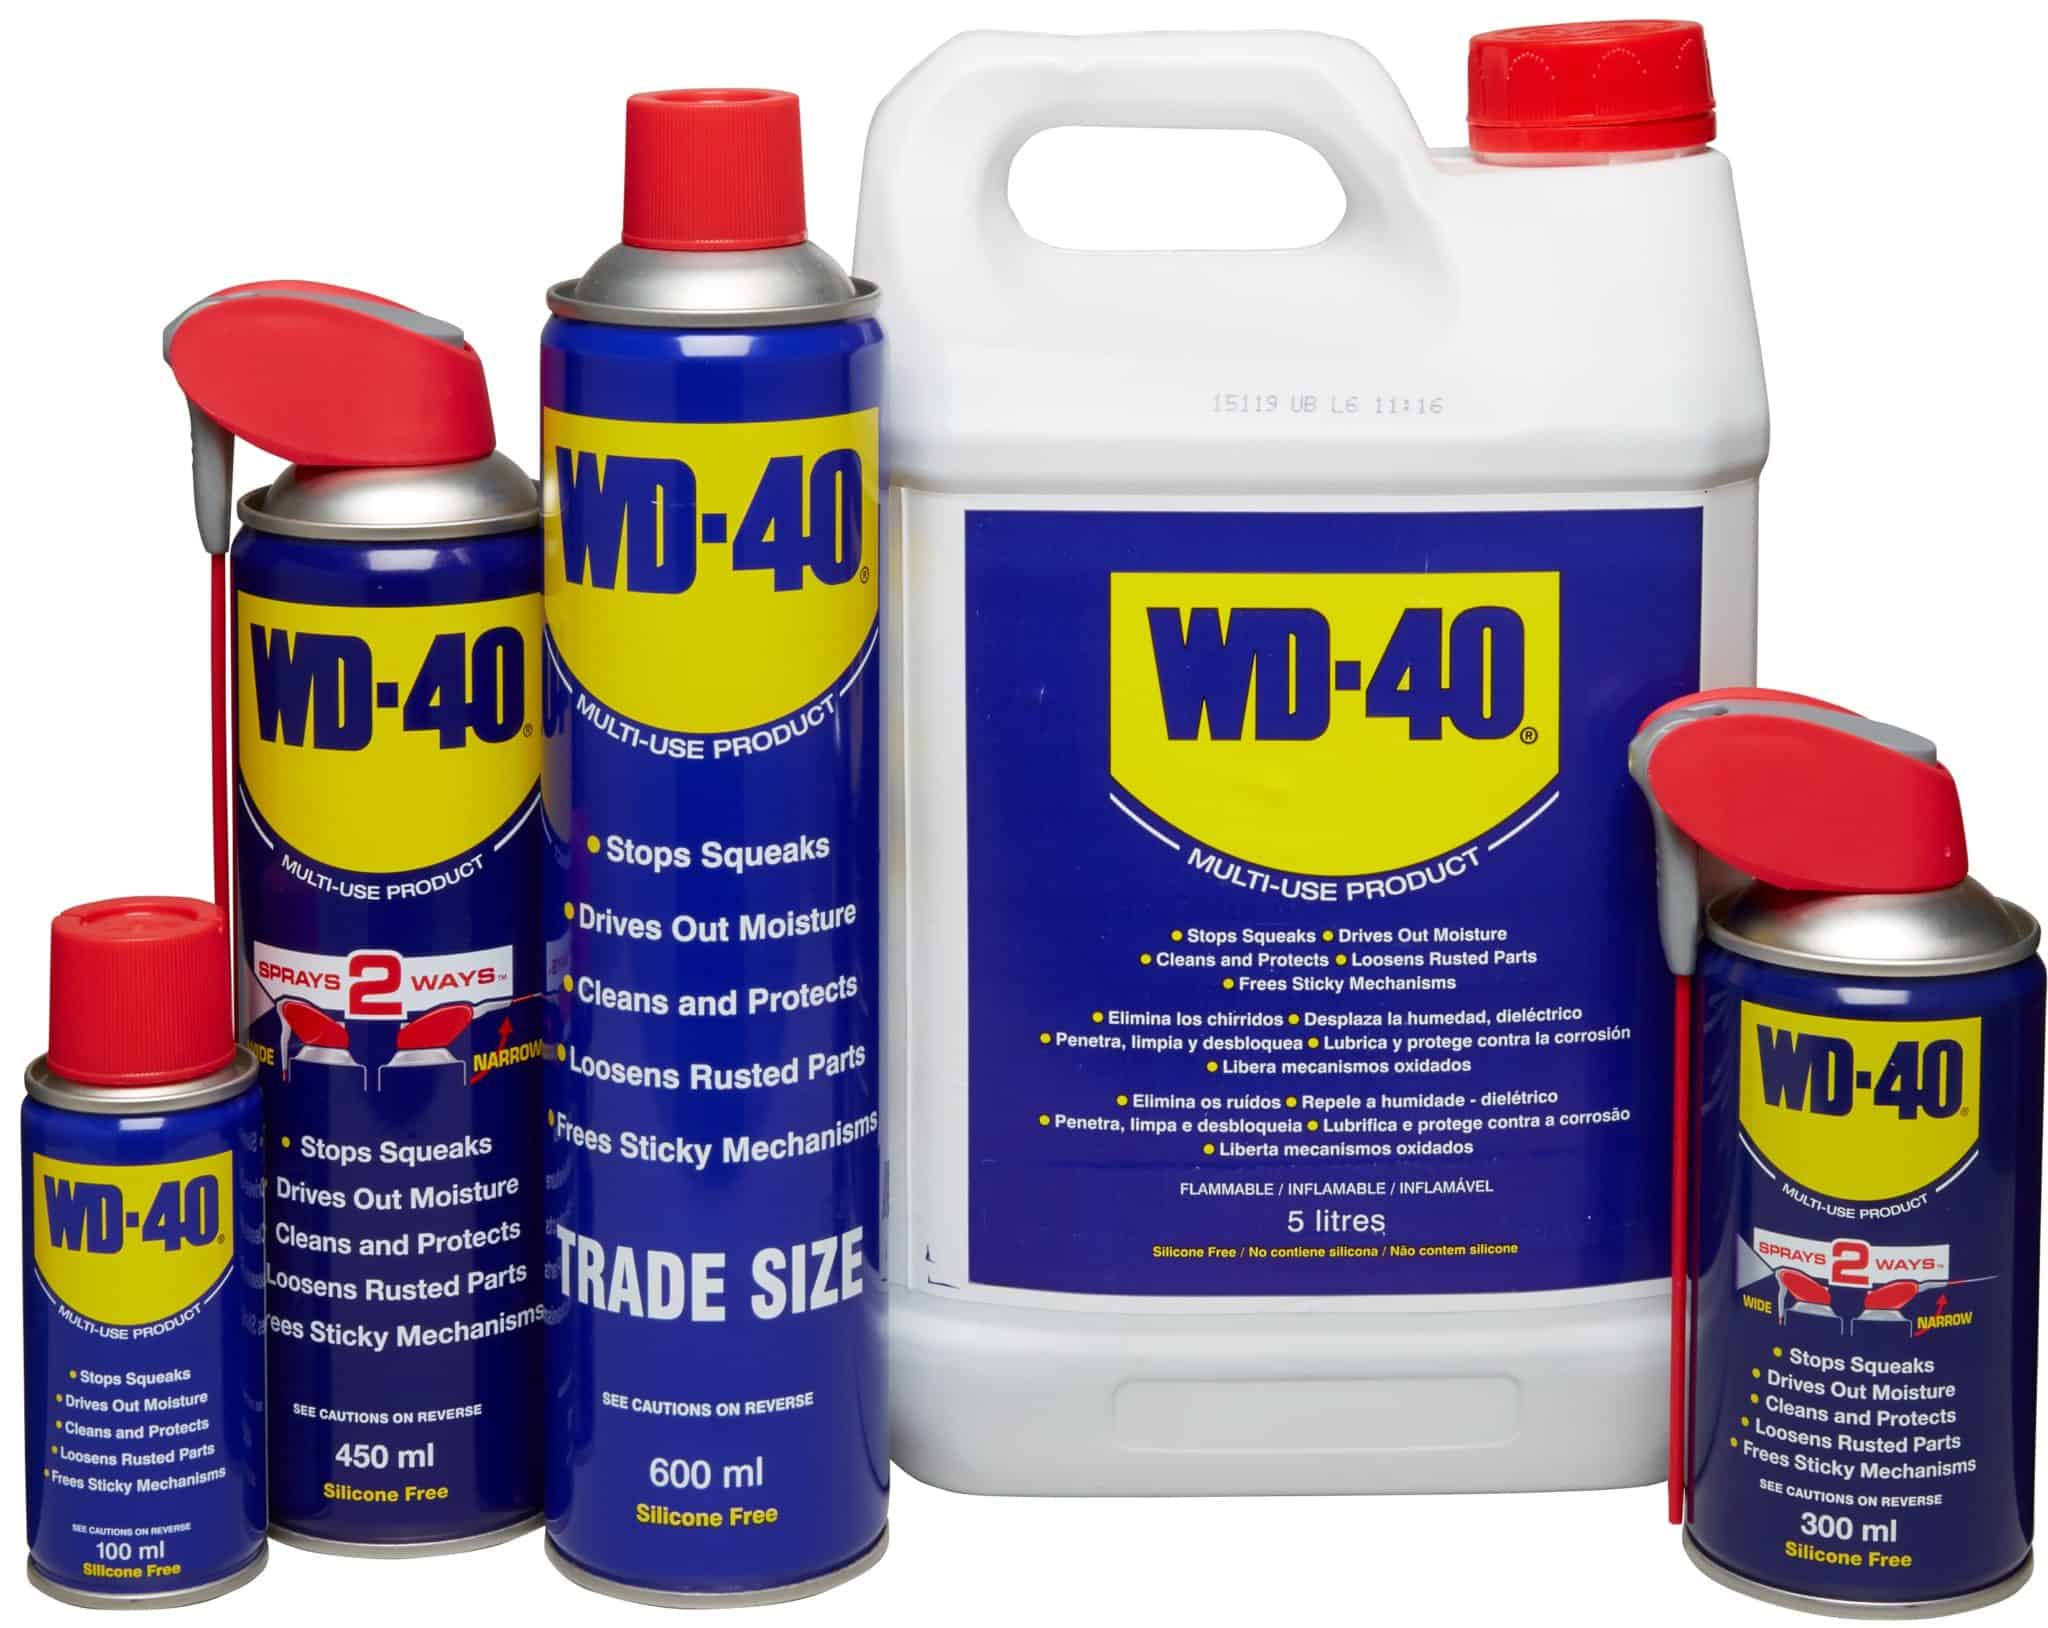 what is wd-40? what does wd-40 stand for?